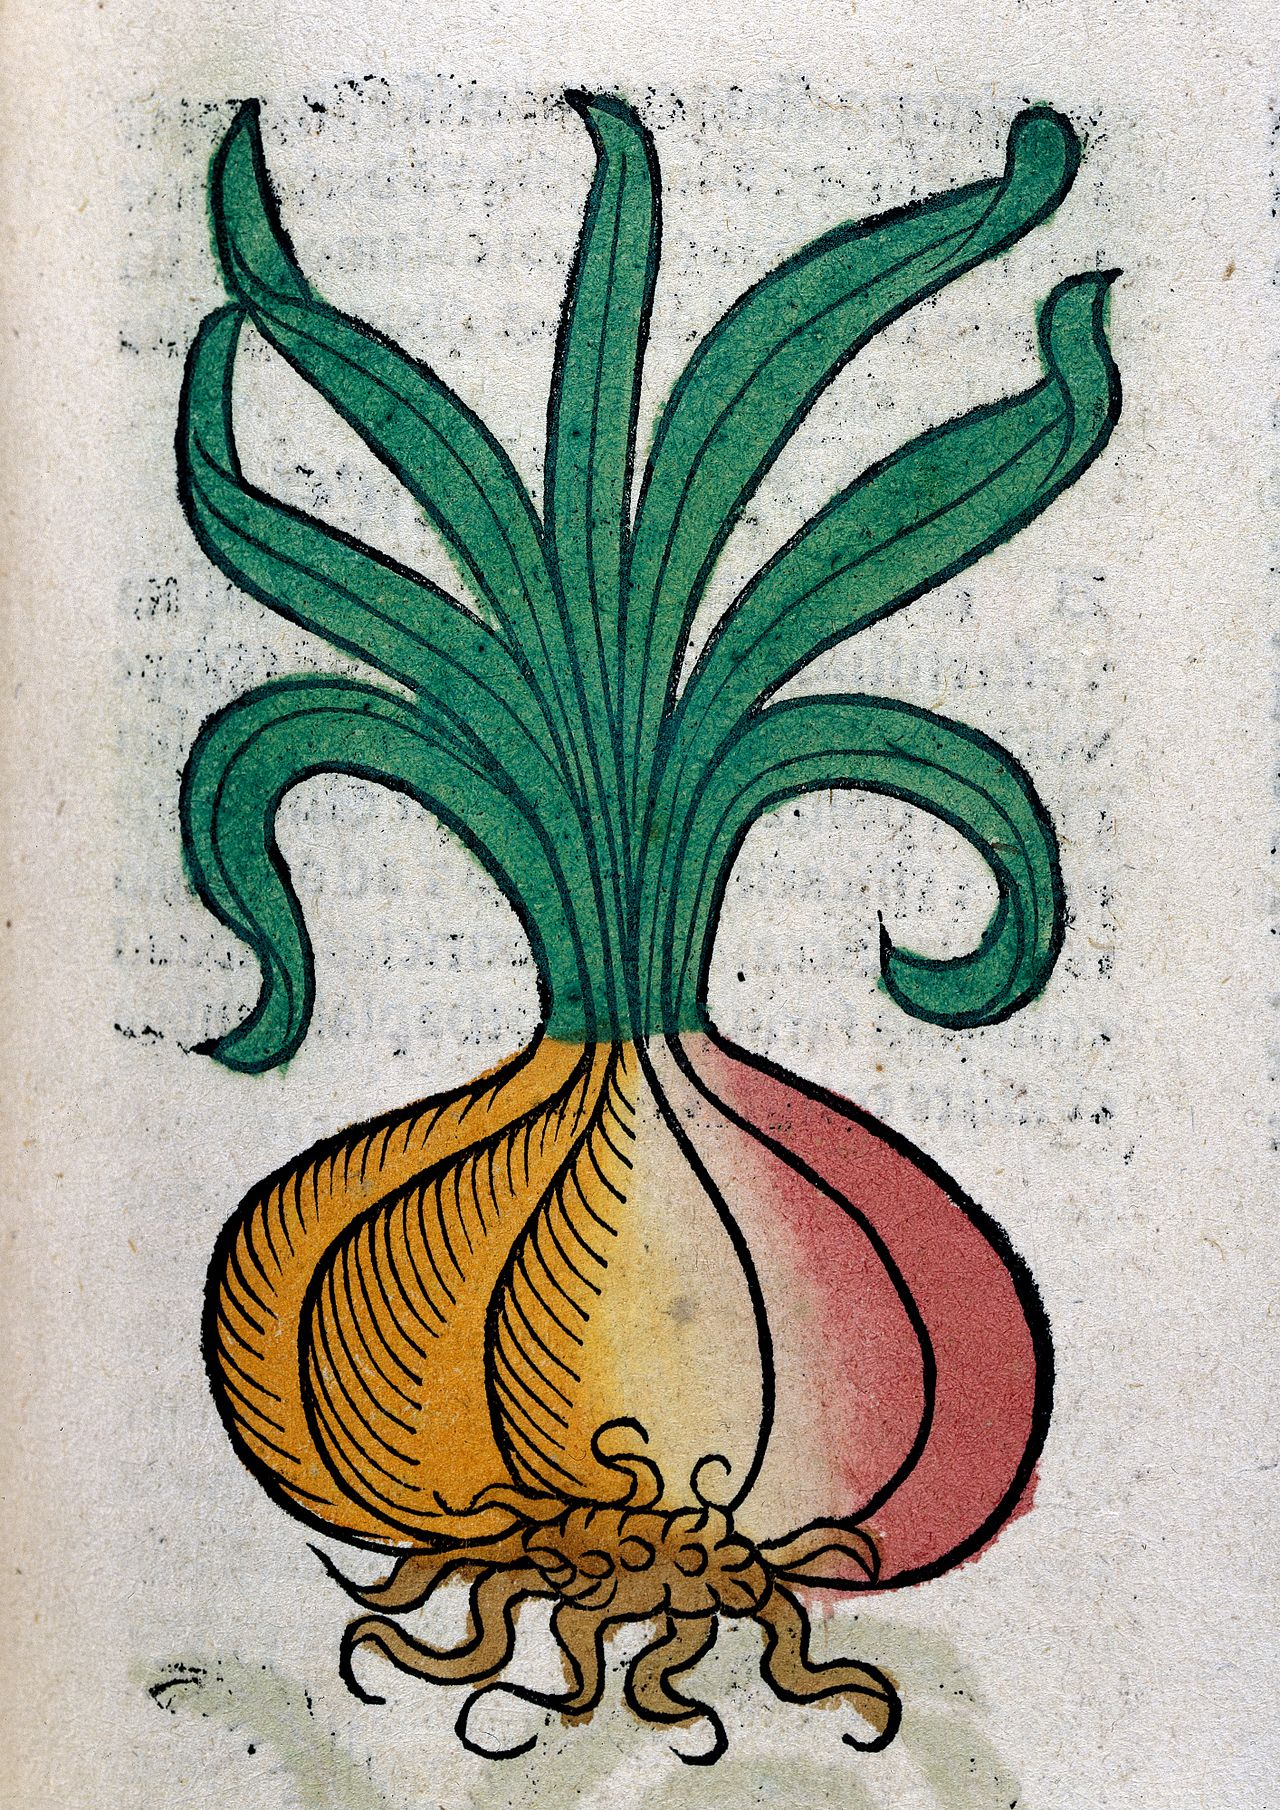 An_onion,_woodcut,_1547_Wellcome_L0029214.jpg